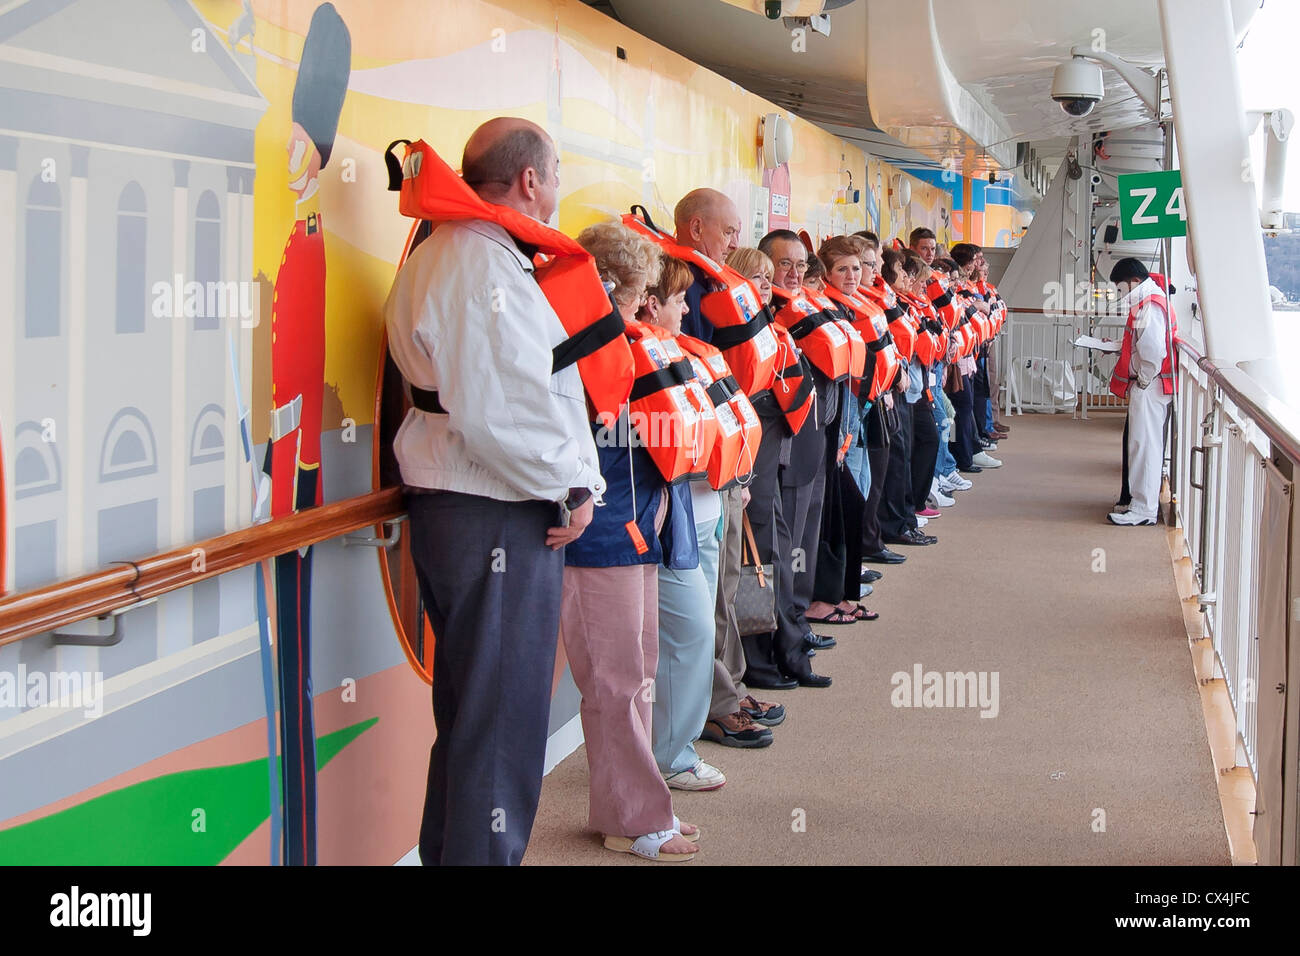 Mandatory guest boat drill for new passengers of Cruise Ship - Stock Image